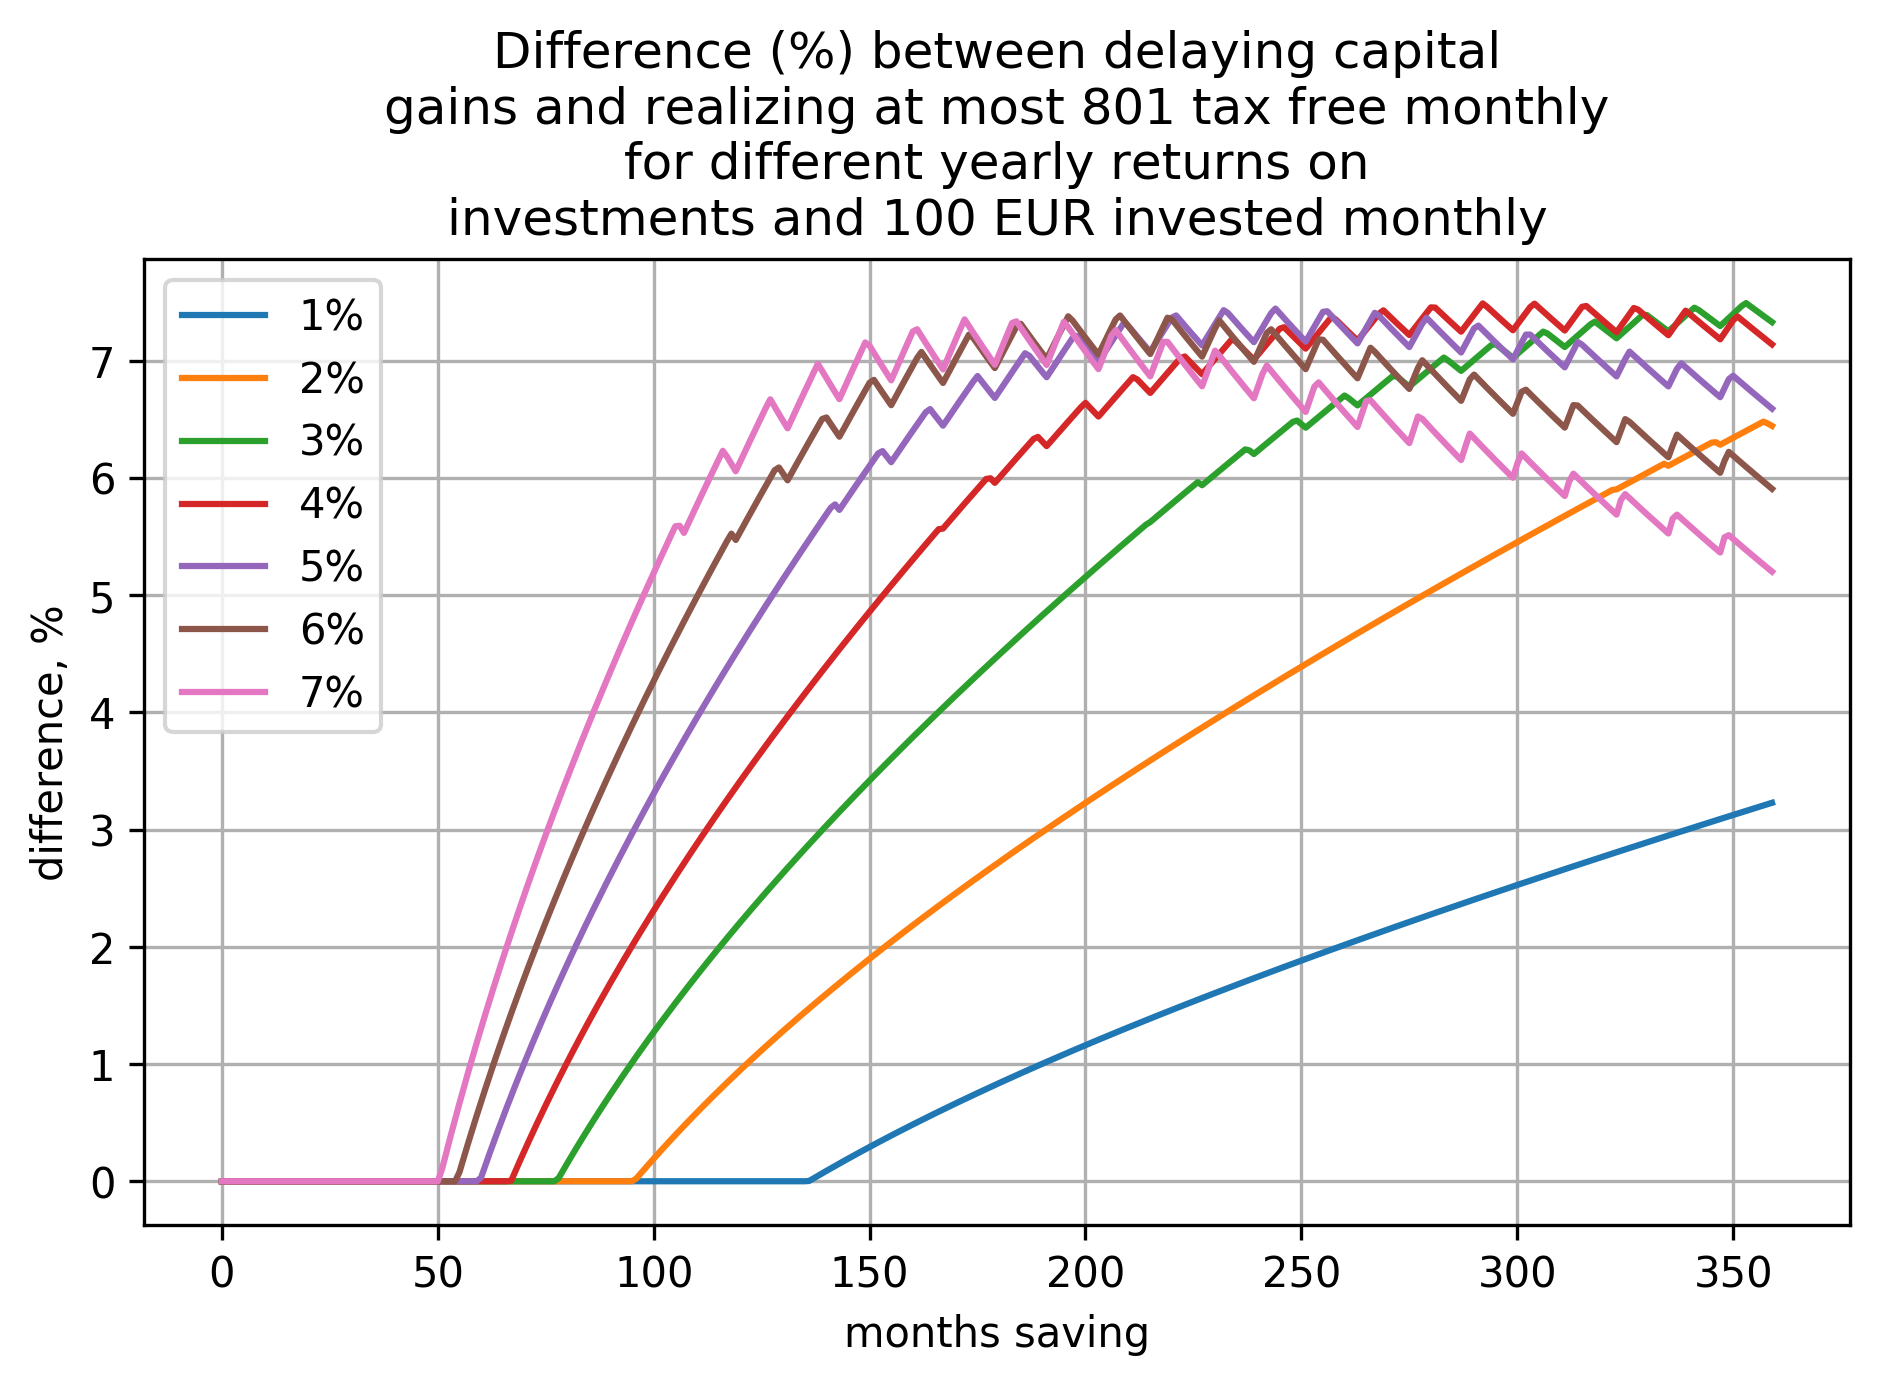 a plot showing how difference (in percents) between the two cases (delaying capital gains and realizing at most 801€ tax free yearly) depends on time saving and yearly return on investment when investing 100€ per month